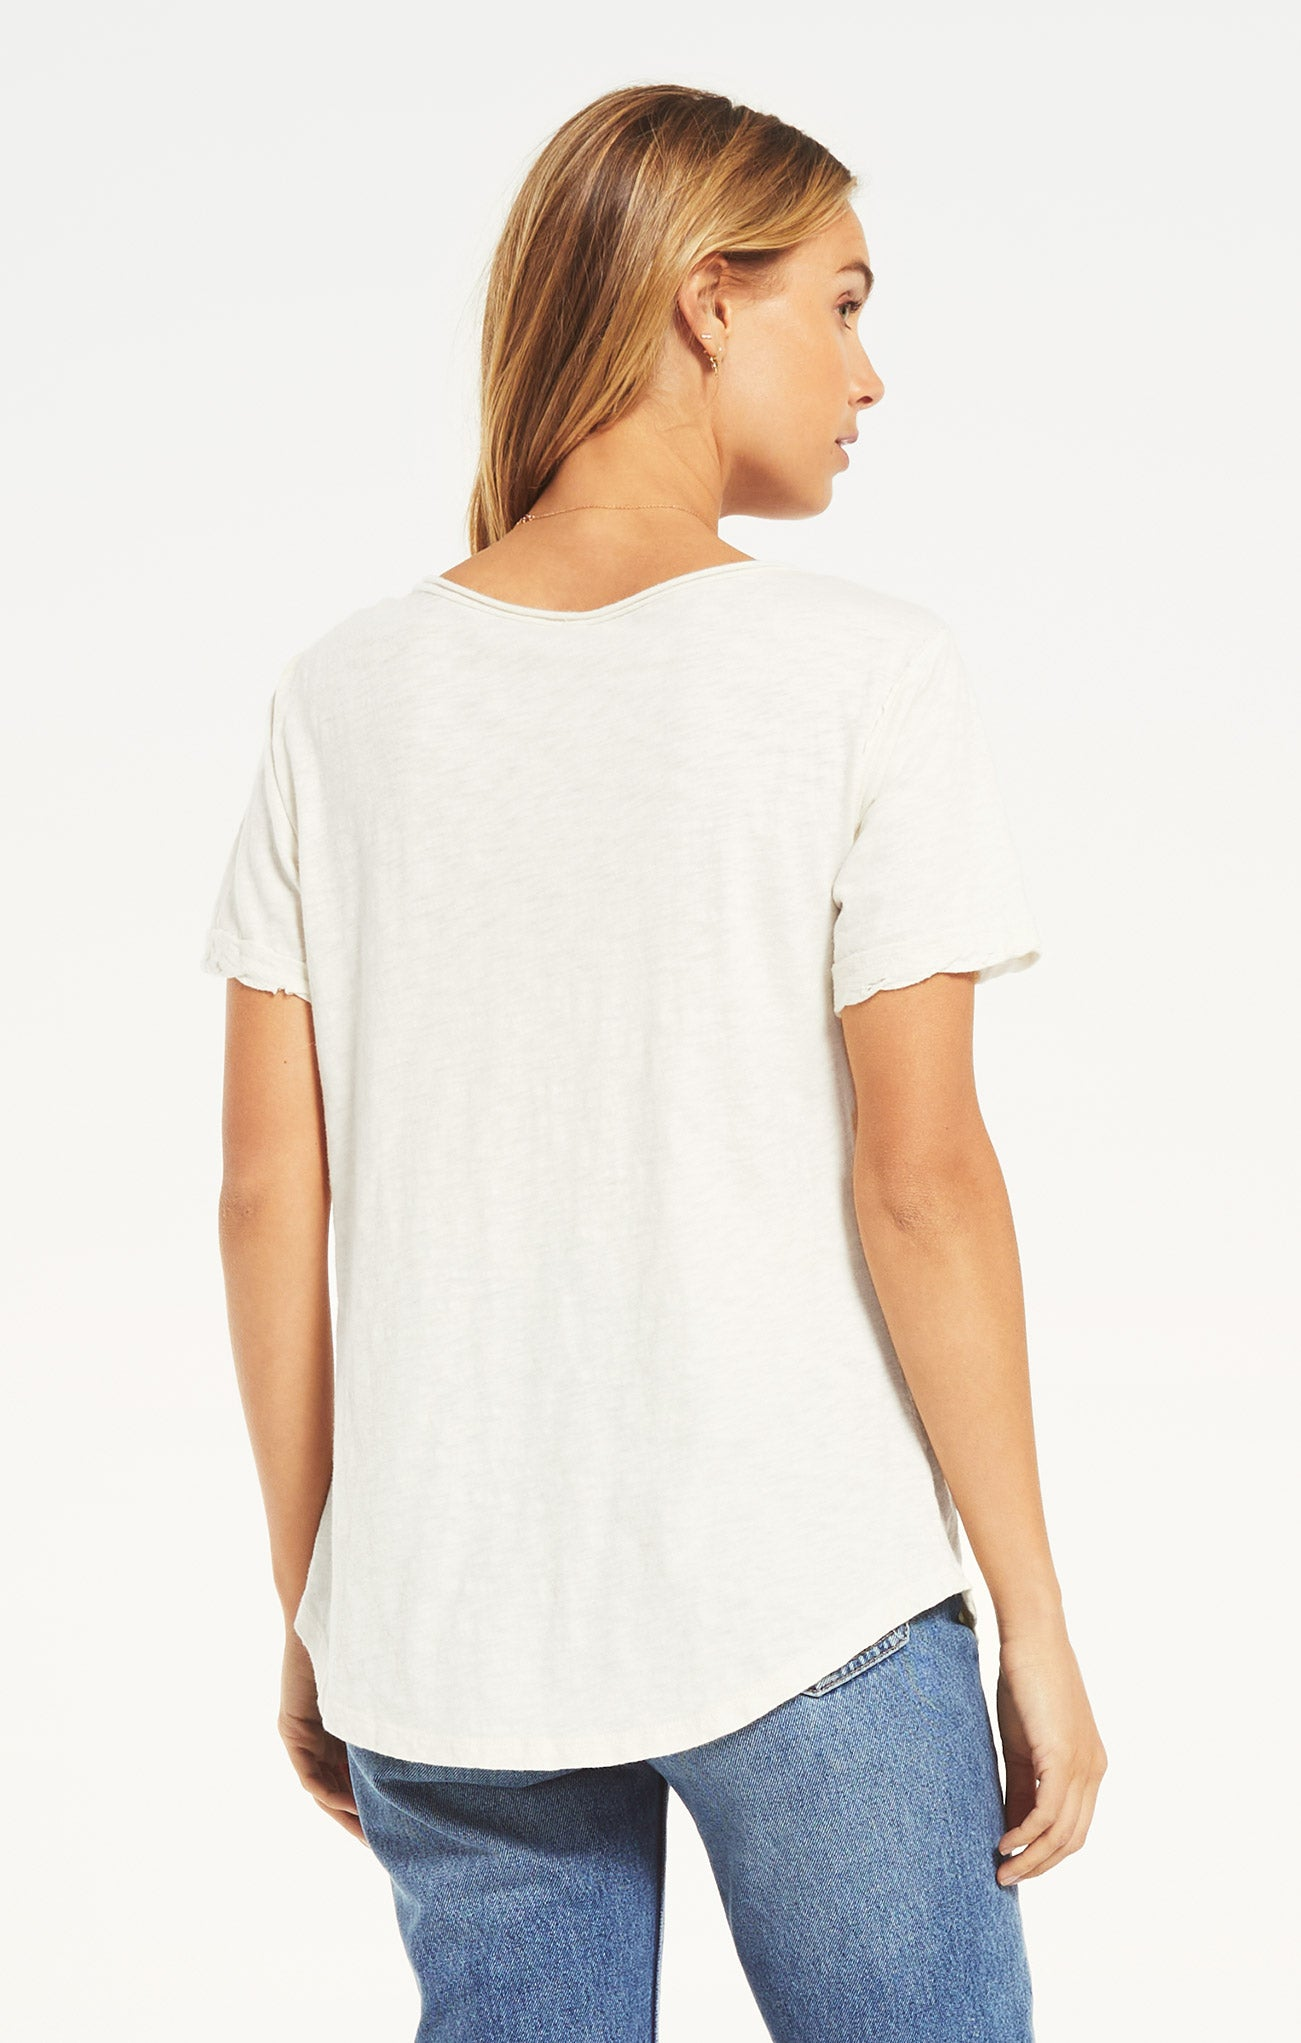 Tops Cotton Slub V-Neck Tee White